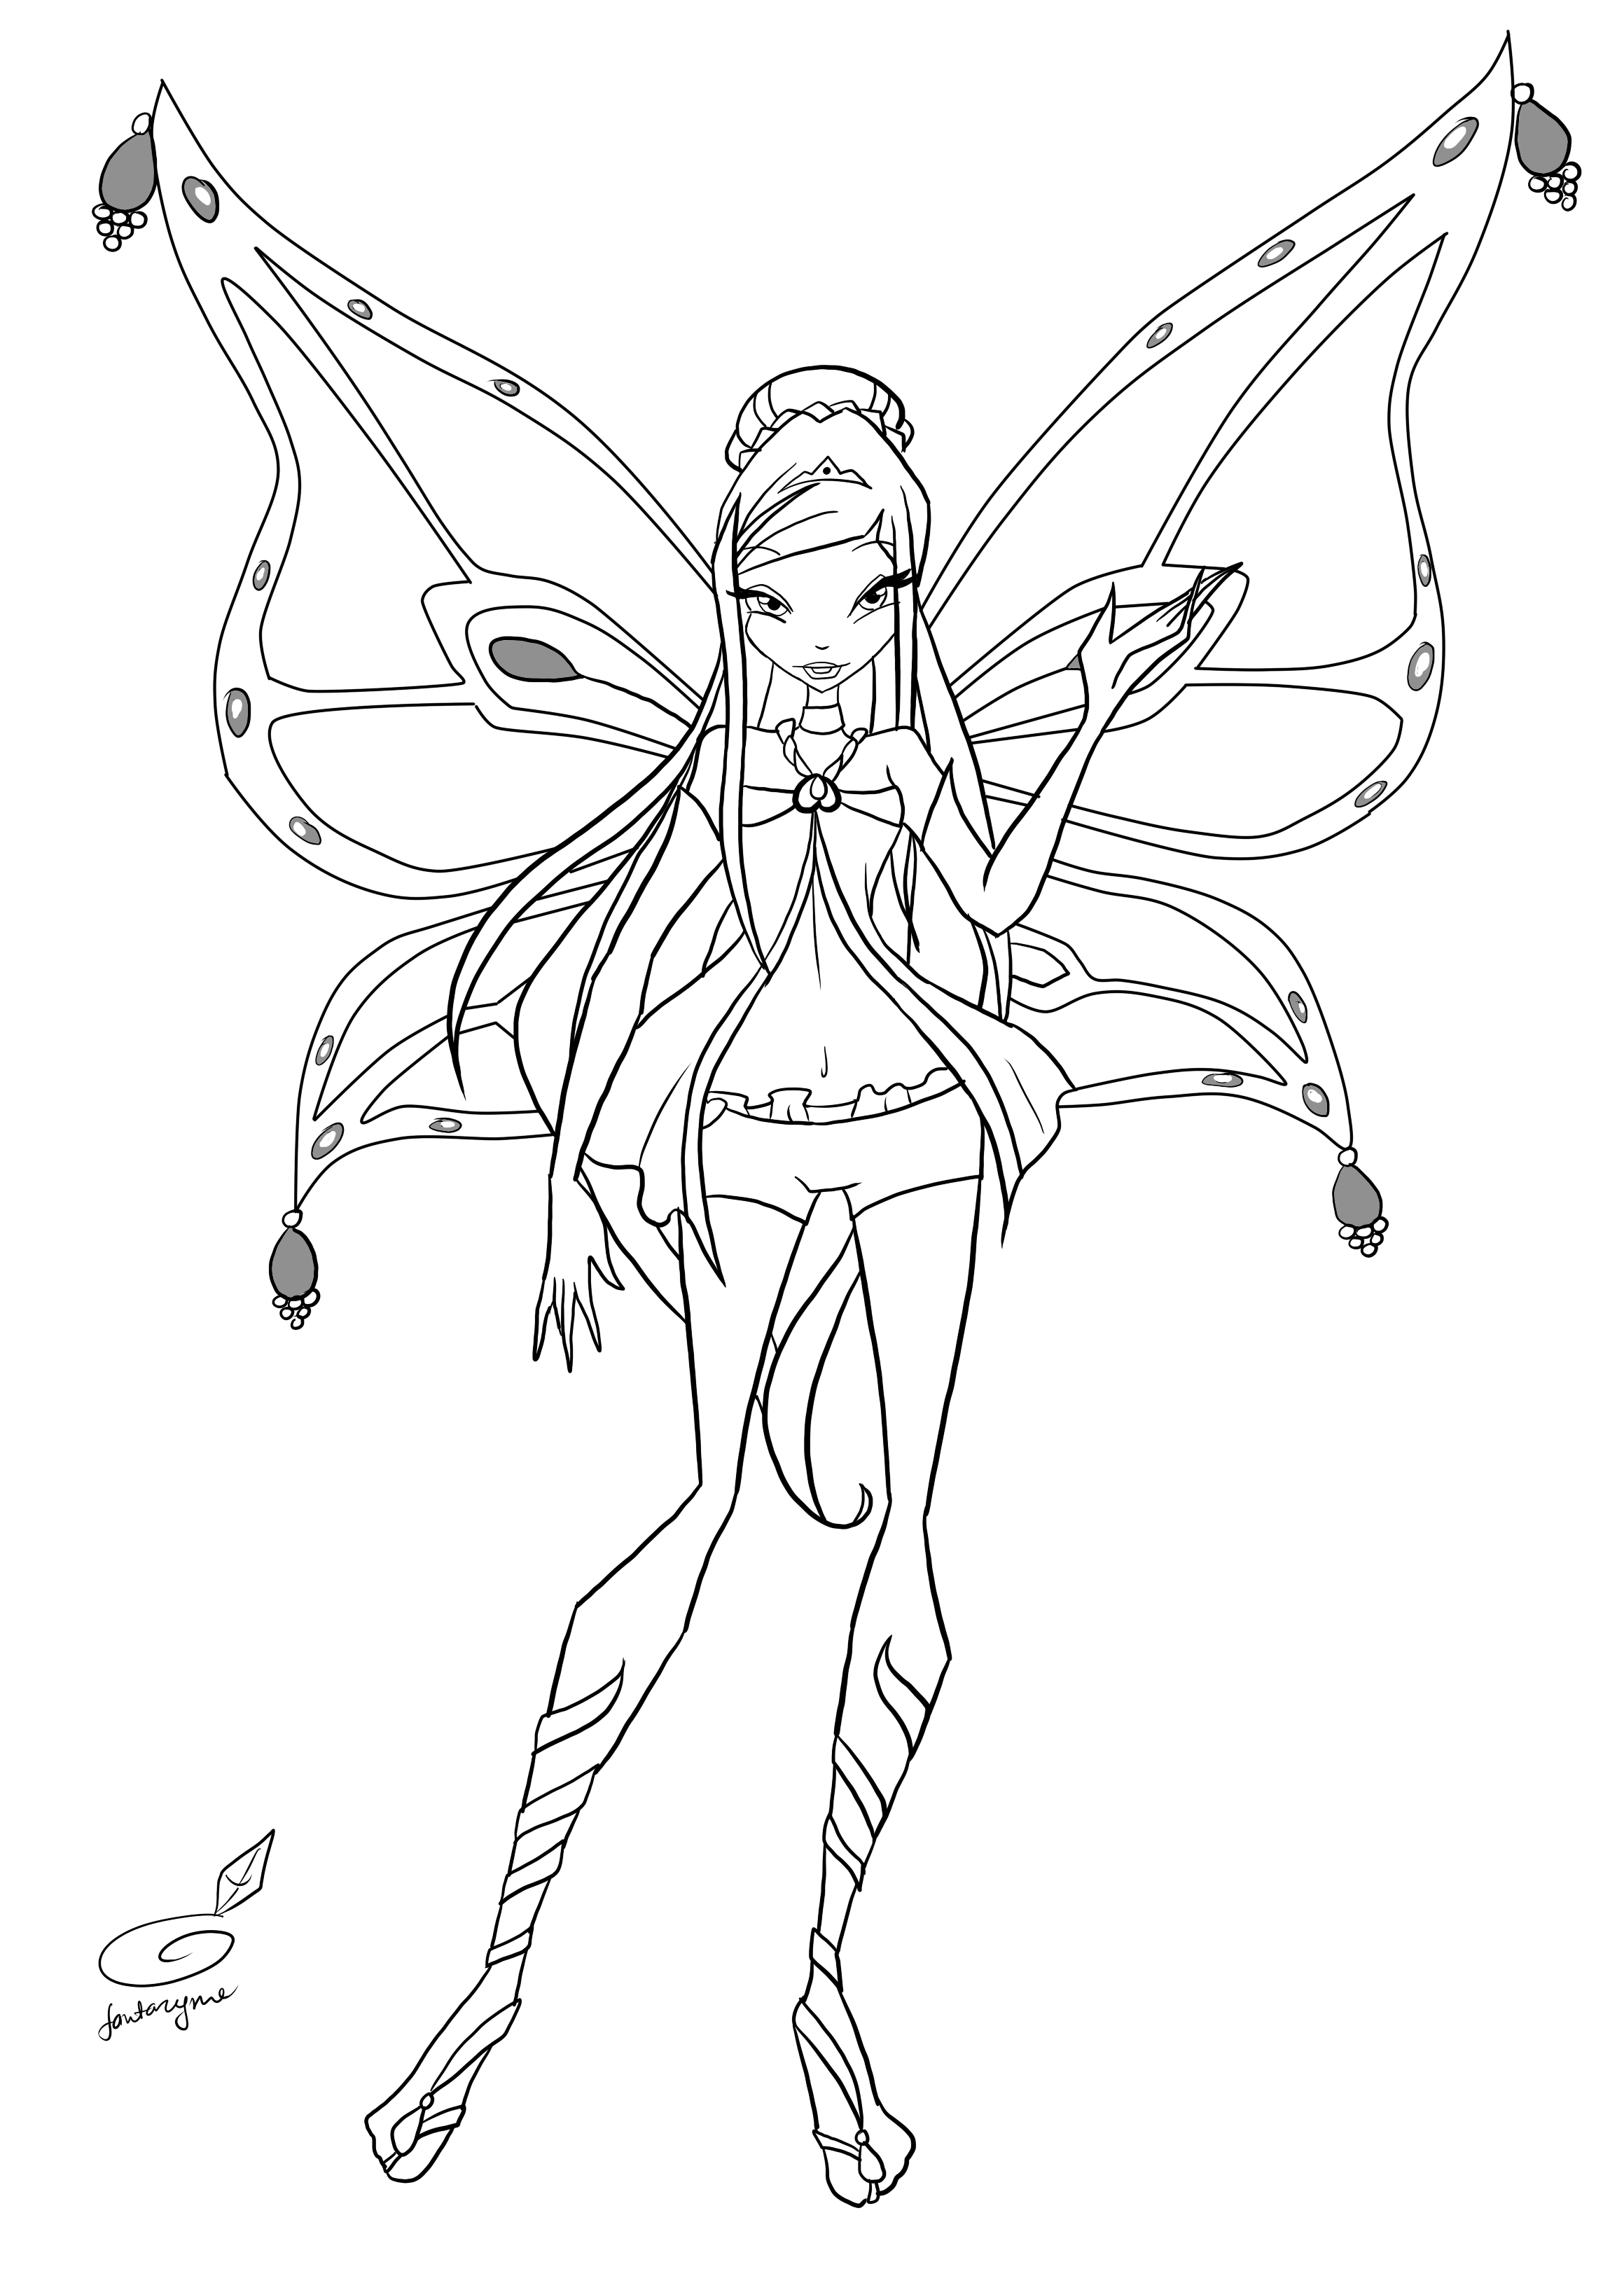 Winx club musa flyrix coloring pages coloriage - Coloring Pages Winx Coloring Pages Breadedcat Free Printable